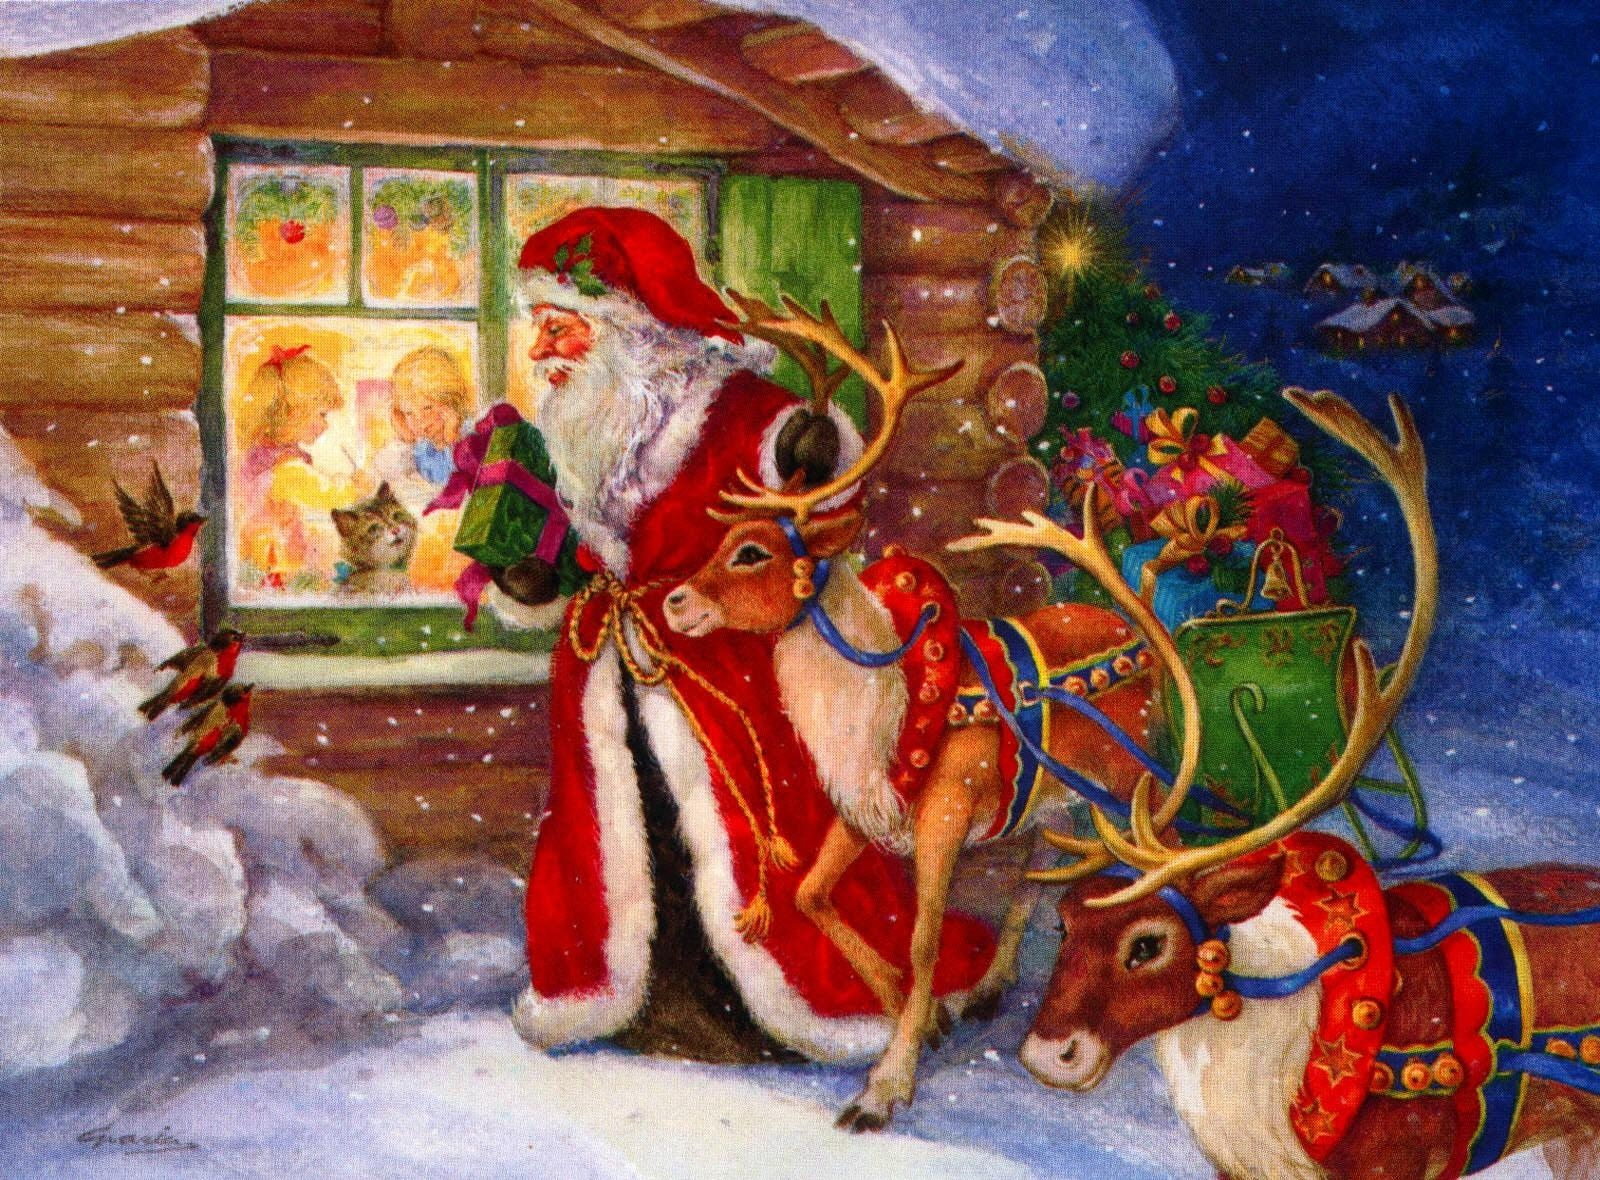 Best Christmas wallpapers for phone screen